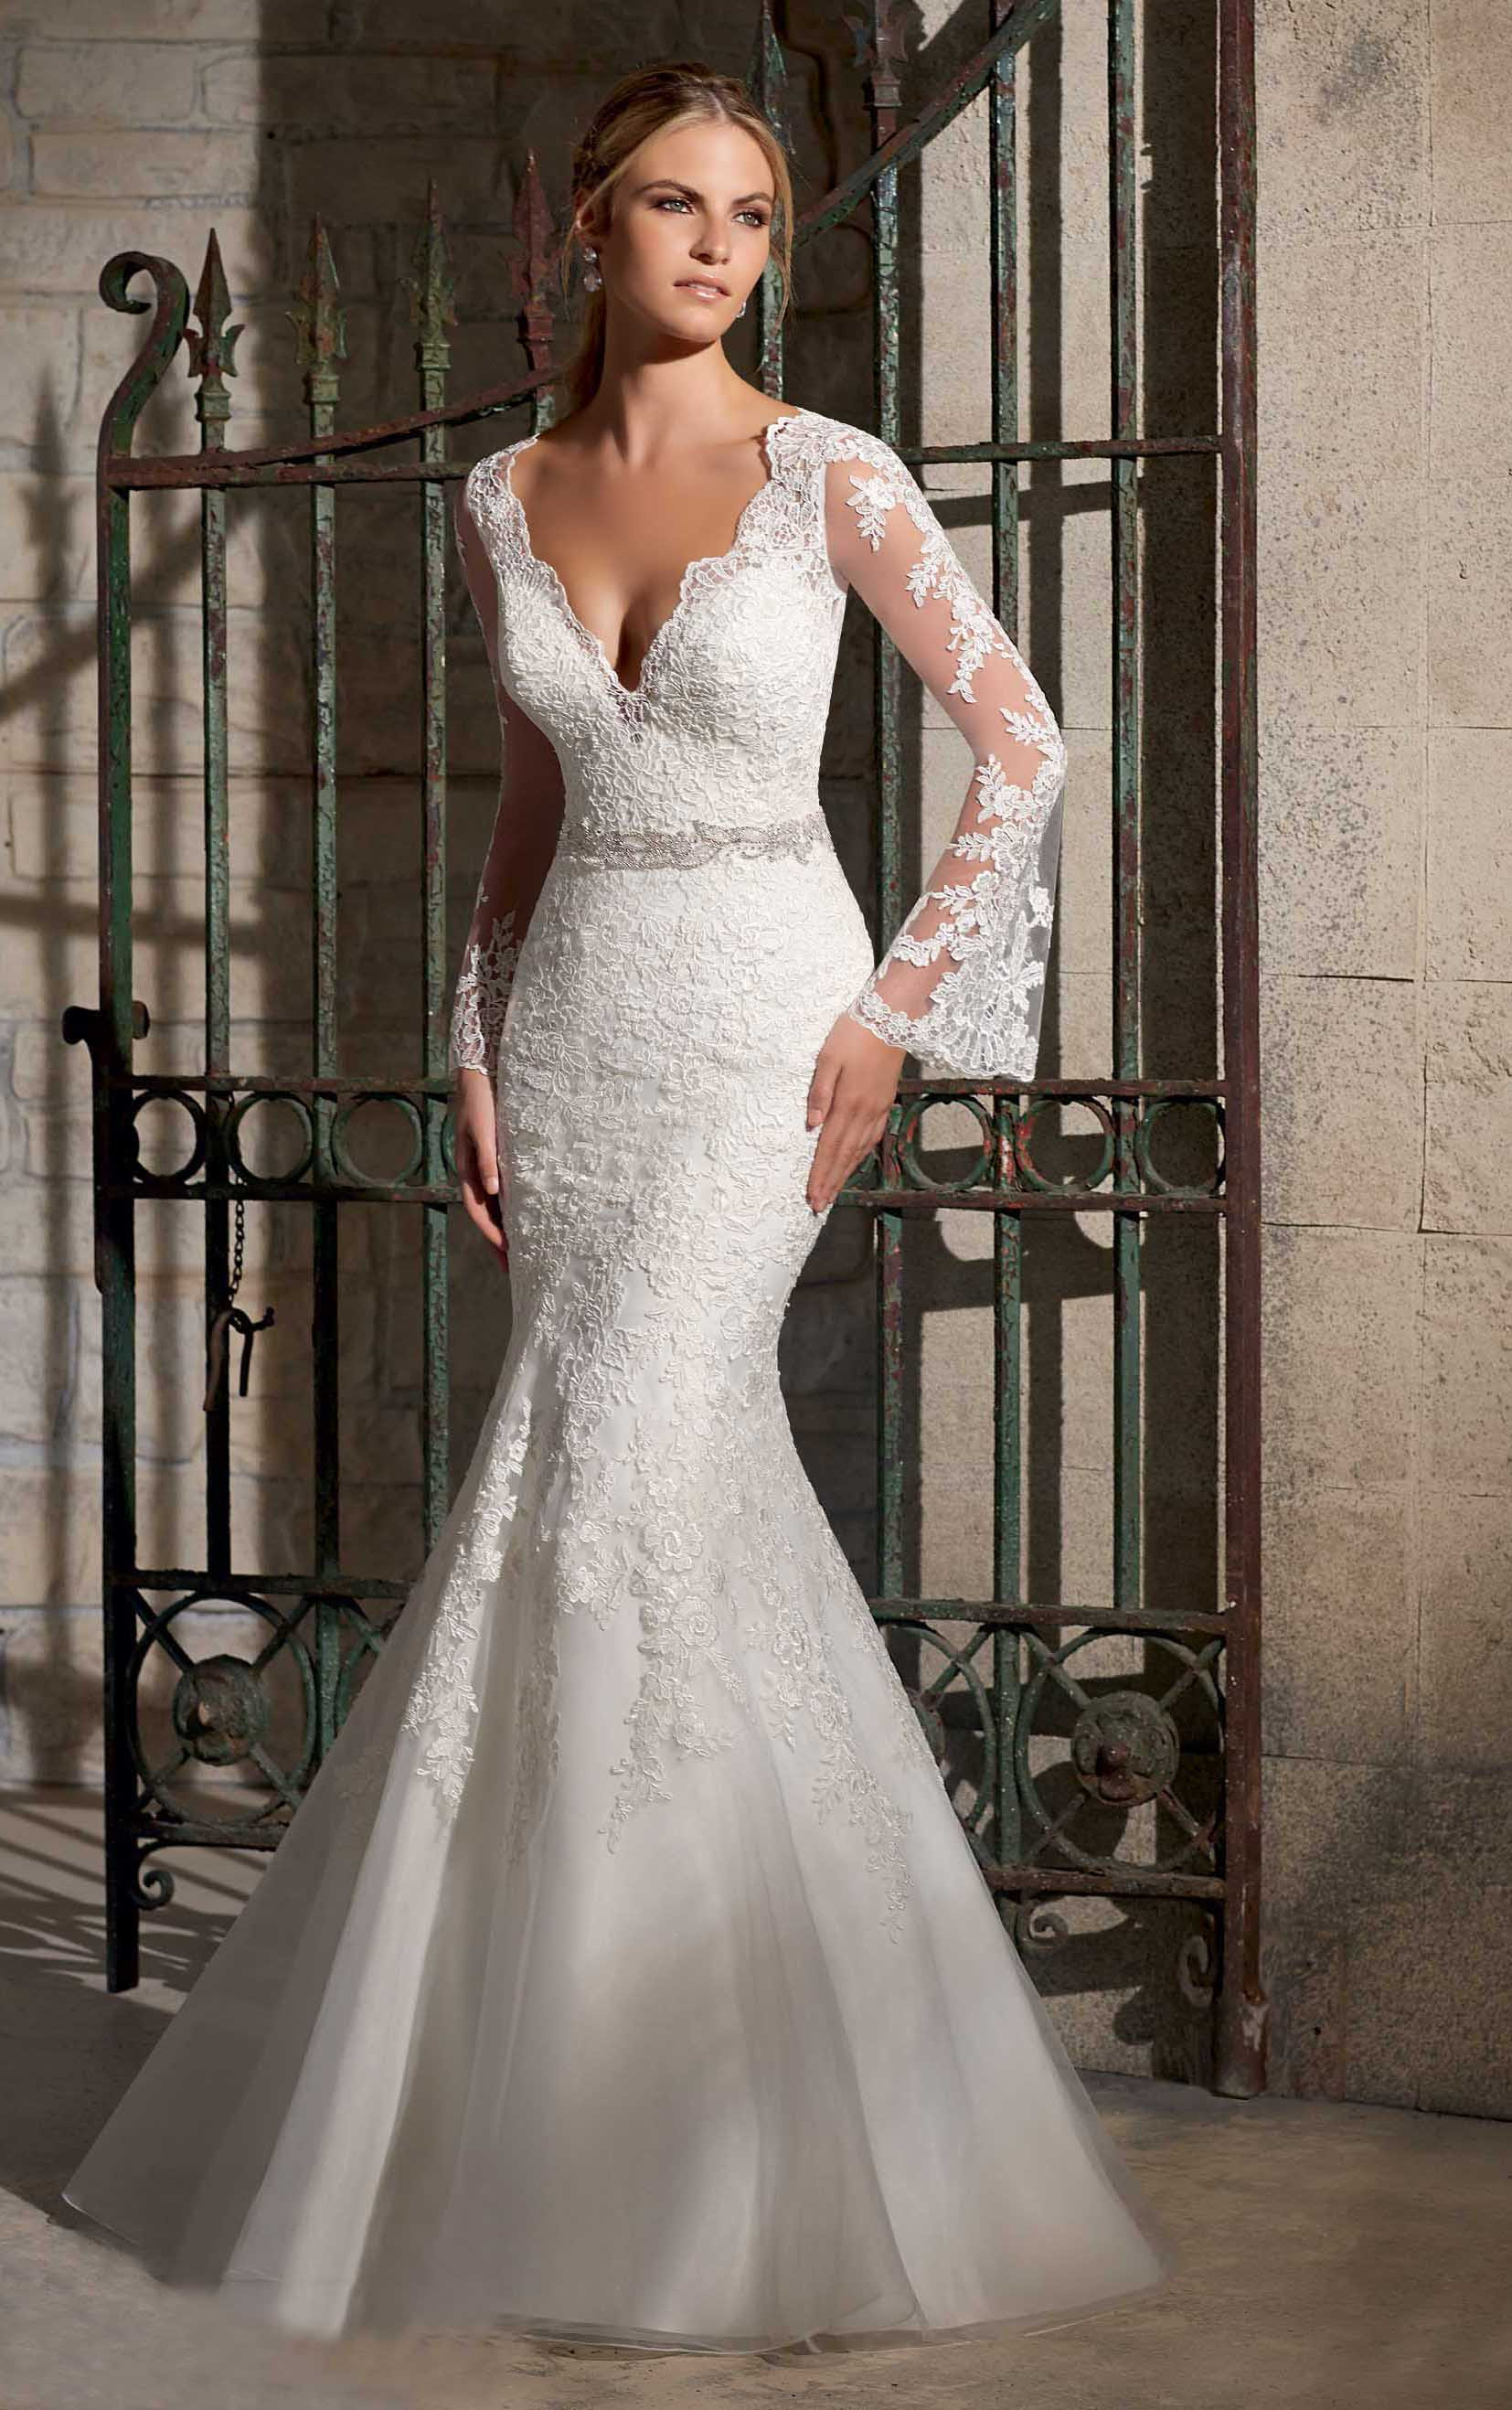 Awesome V Neck Lace Embroidered Mermaid Organza Wedding Dress with Long Lace Trimmed Sleeves